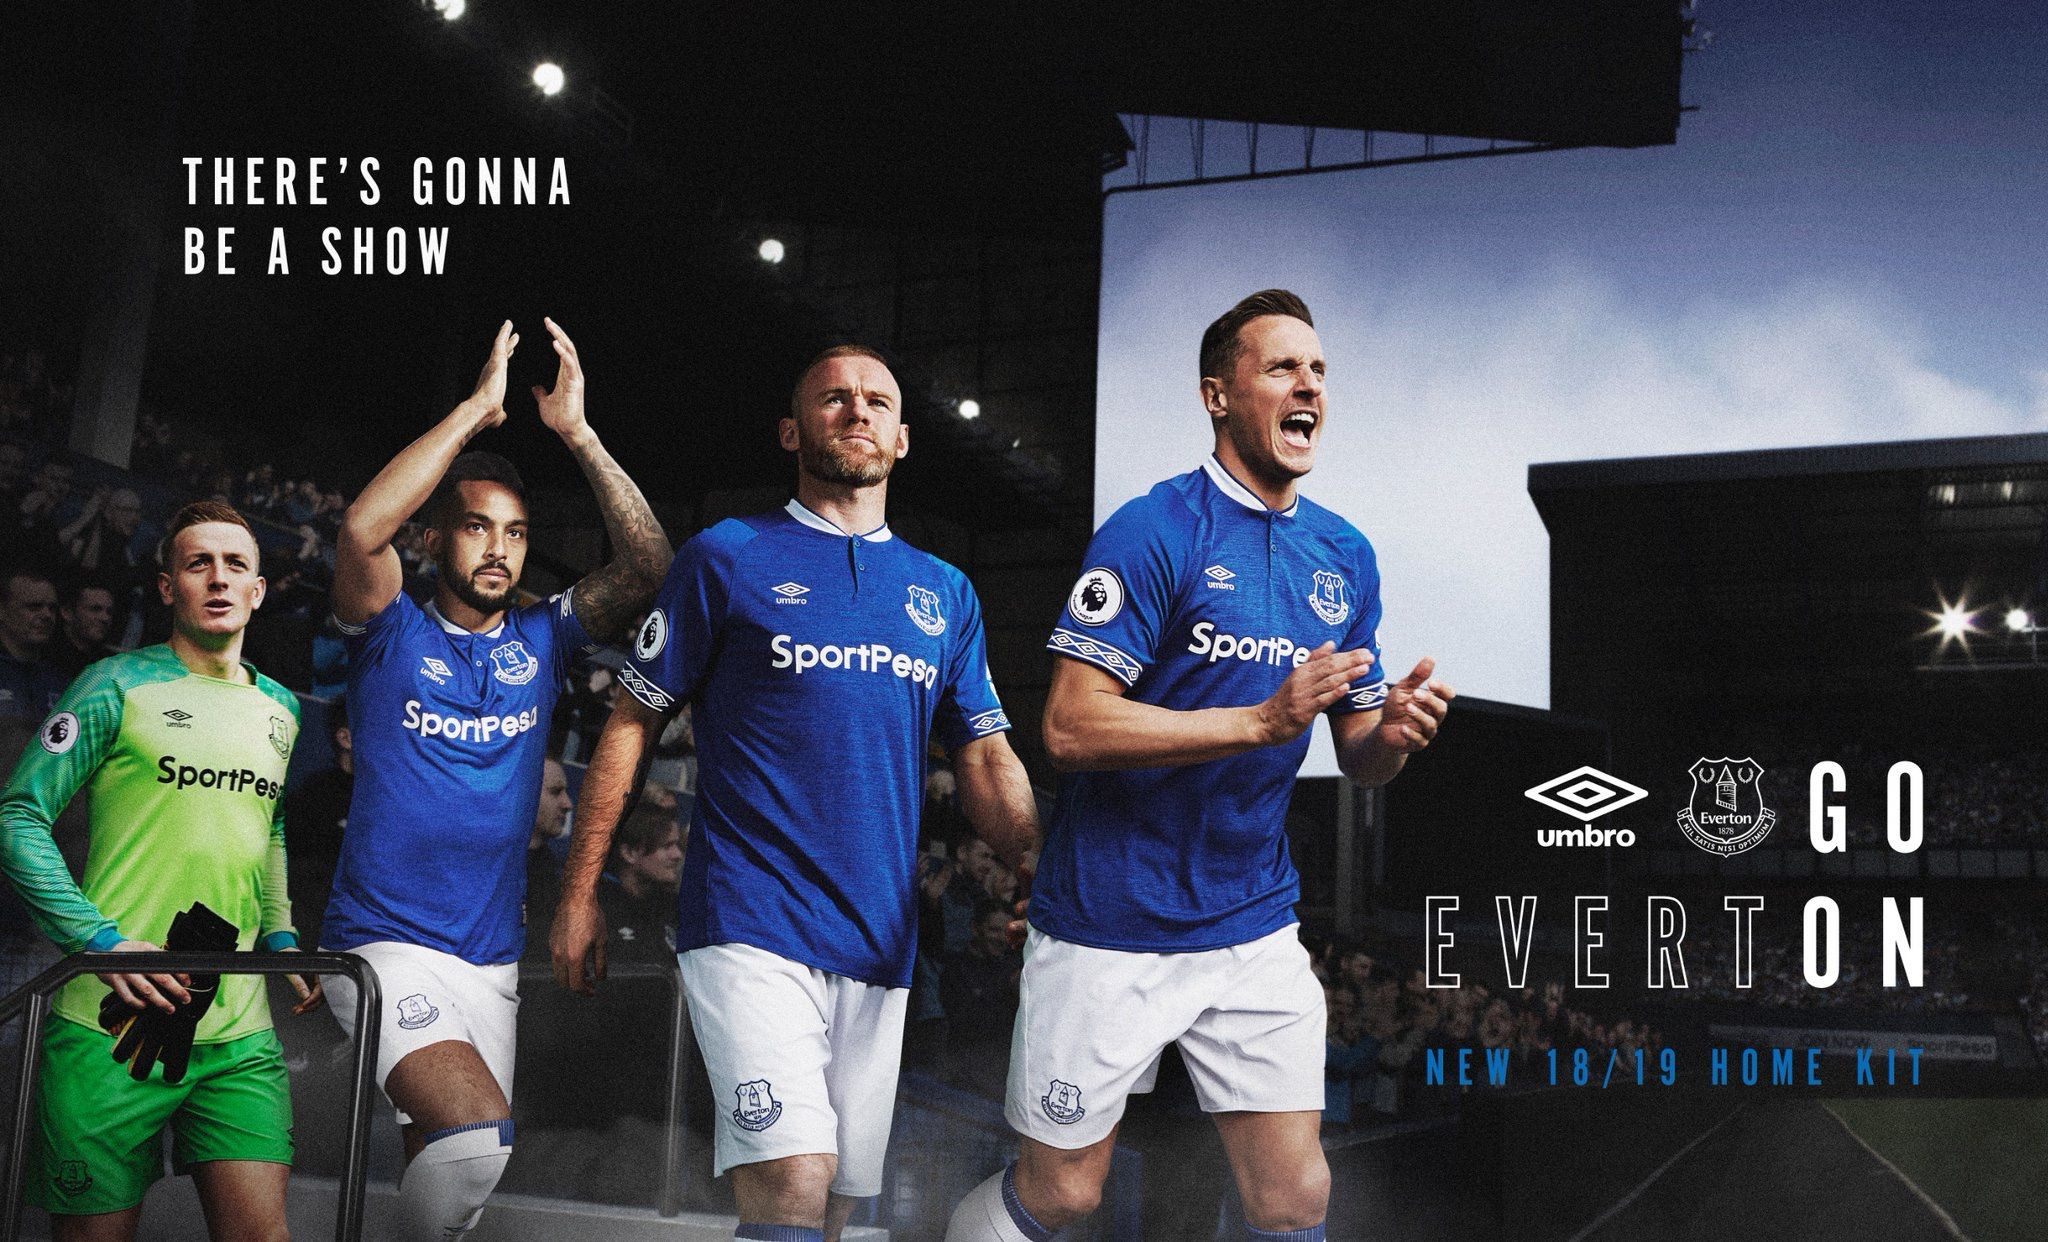 120591974 Everton 2018 2019 Home (Blue) and Goalkeeper (Green) Kits.